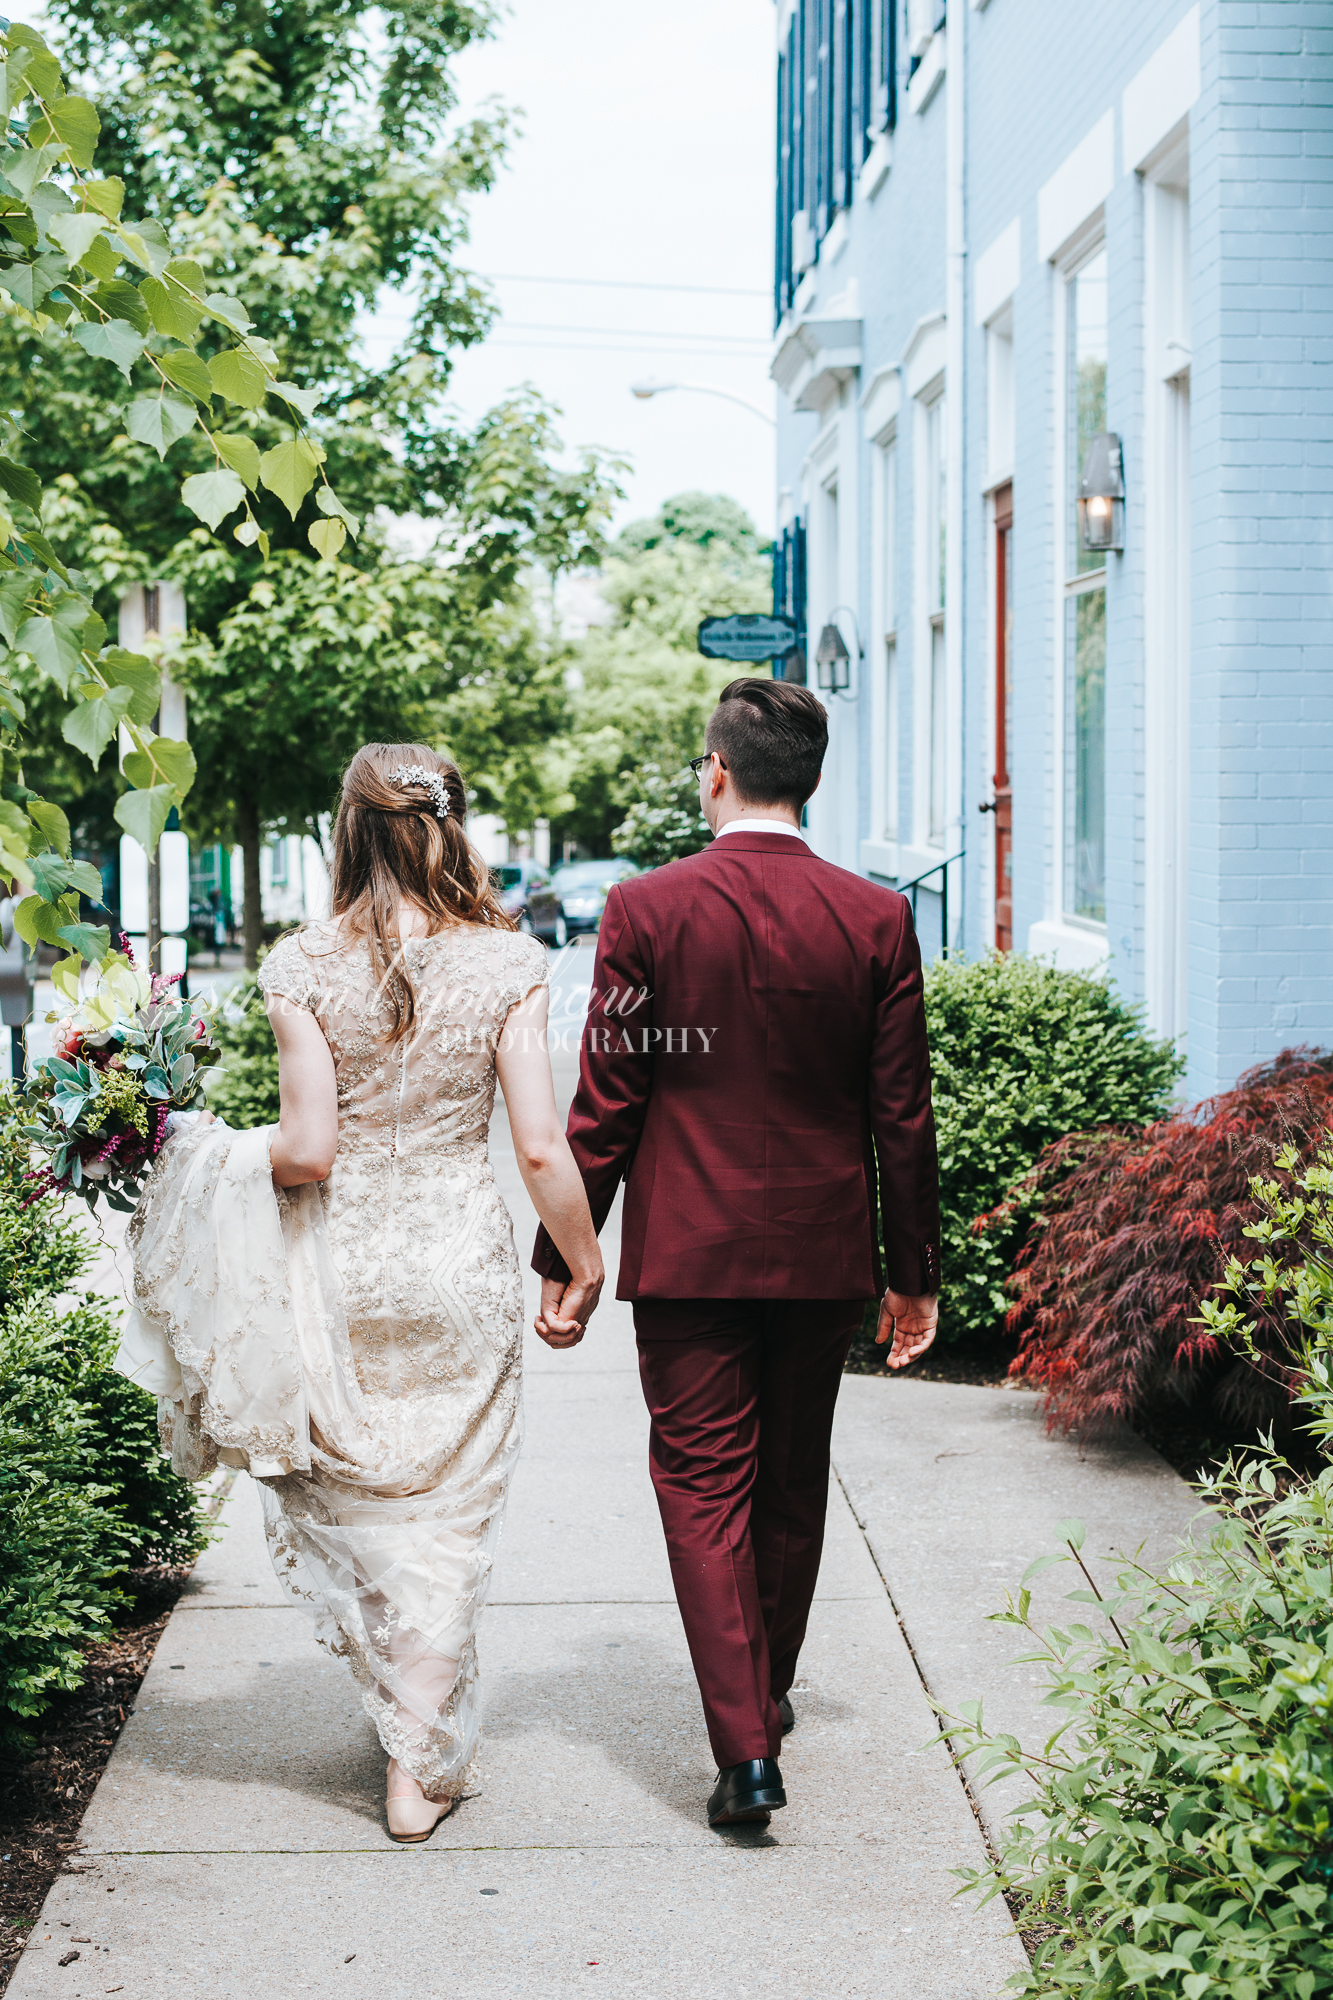 Chynna and John Wedding 05-18-2019 SLY Photography-72.jpg